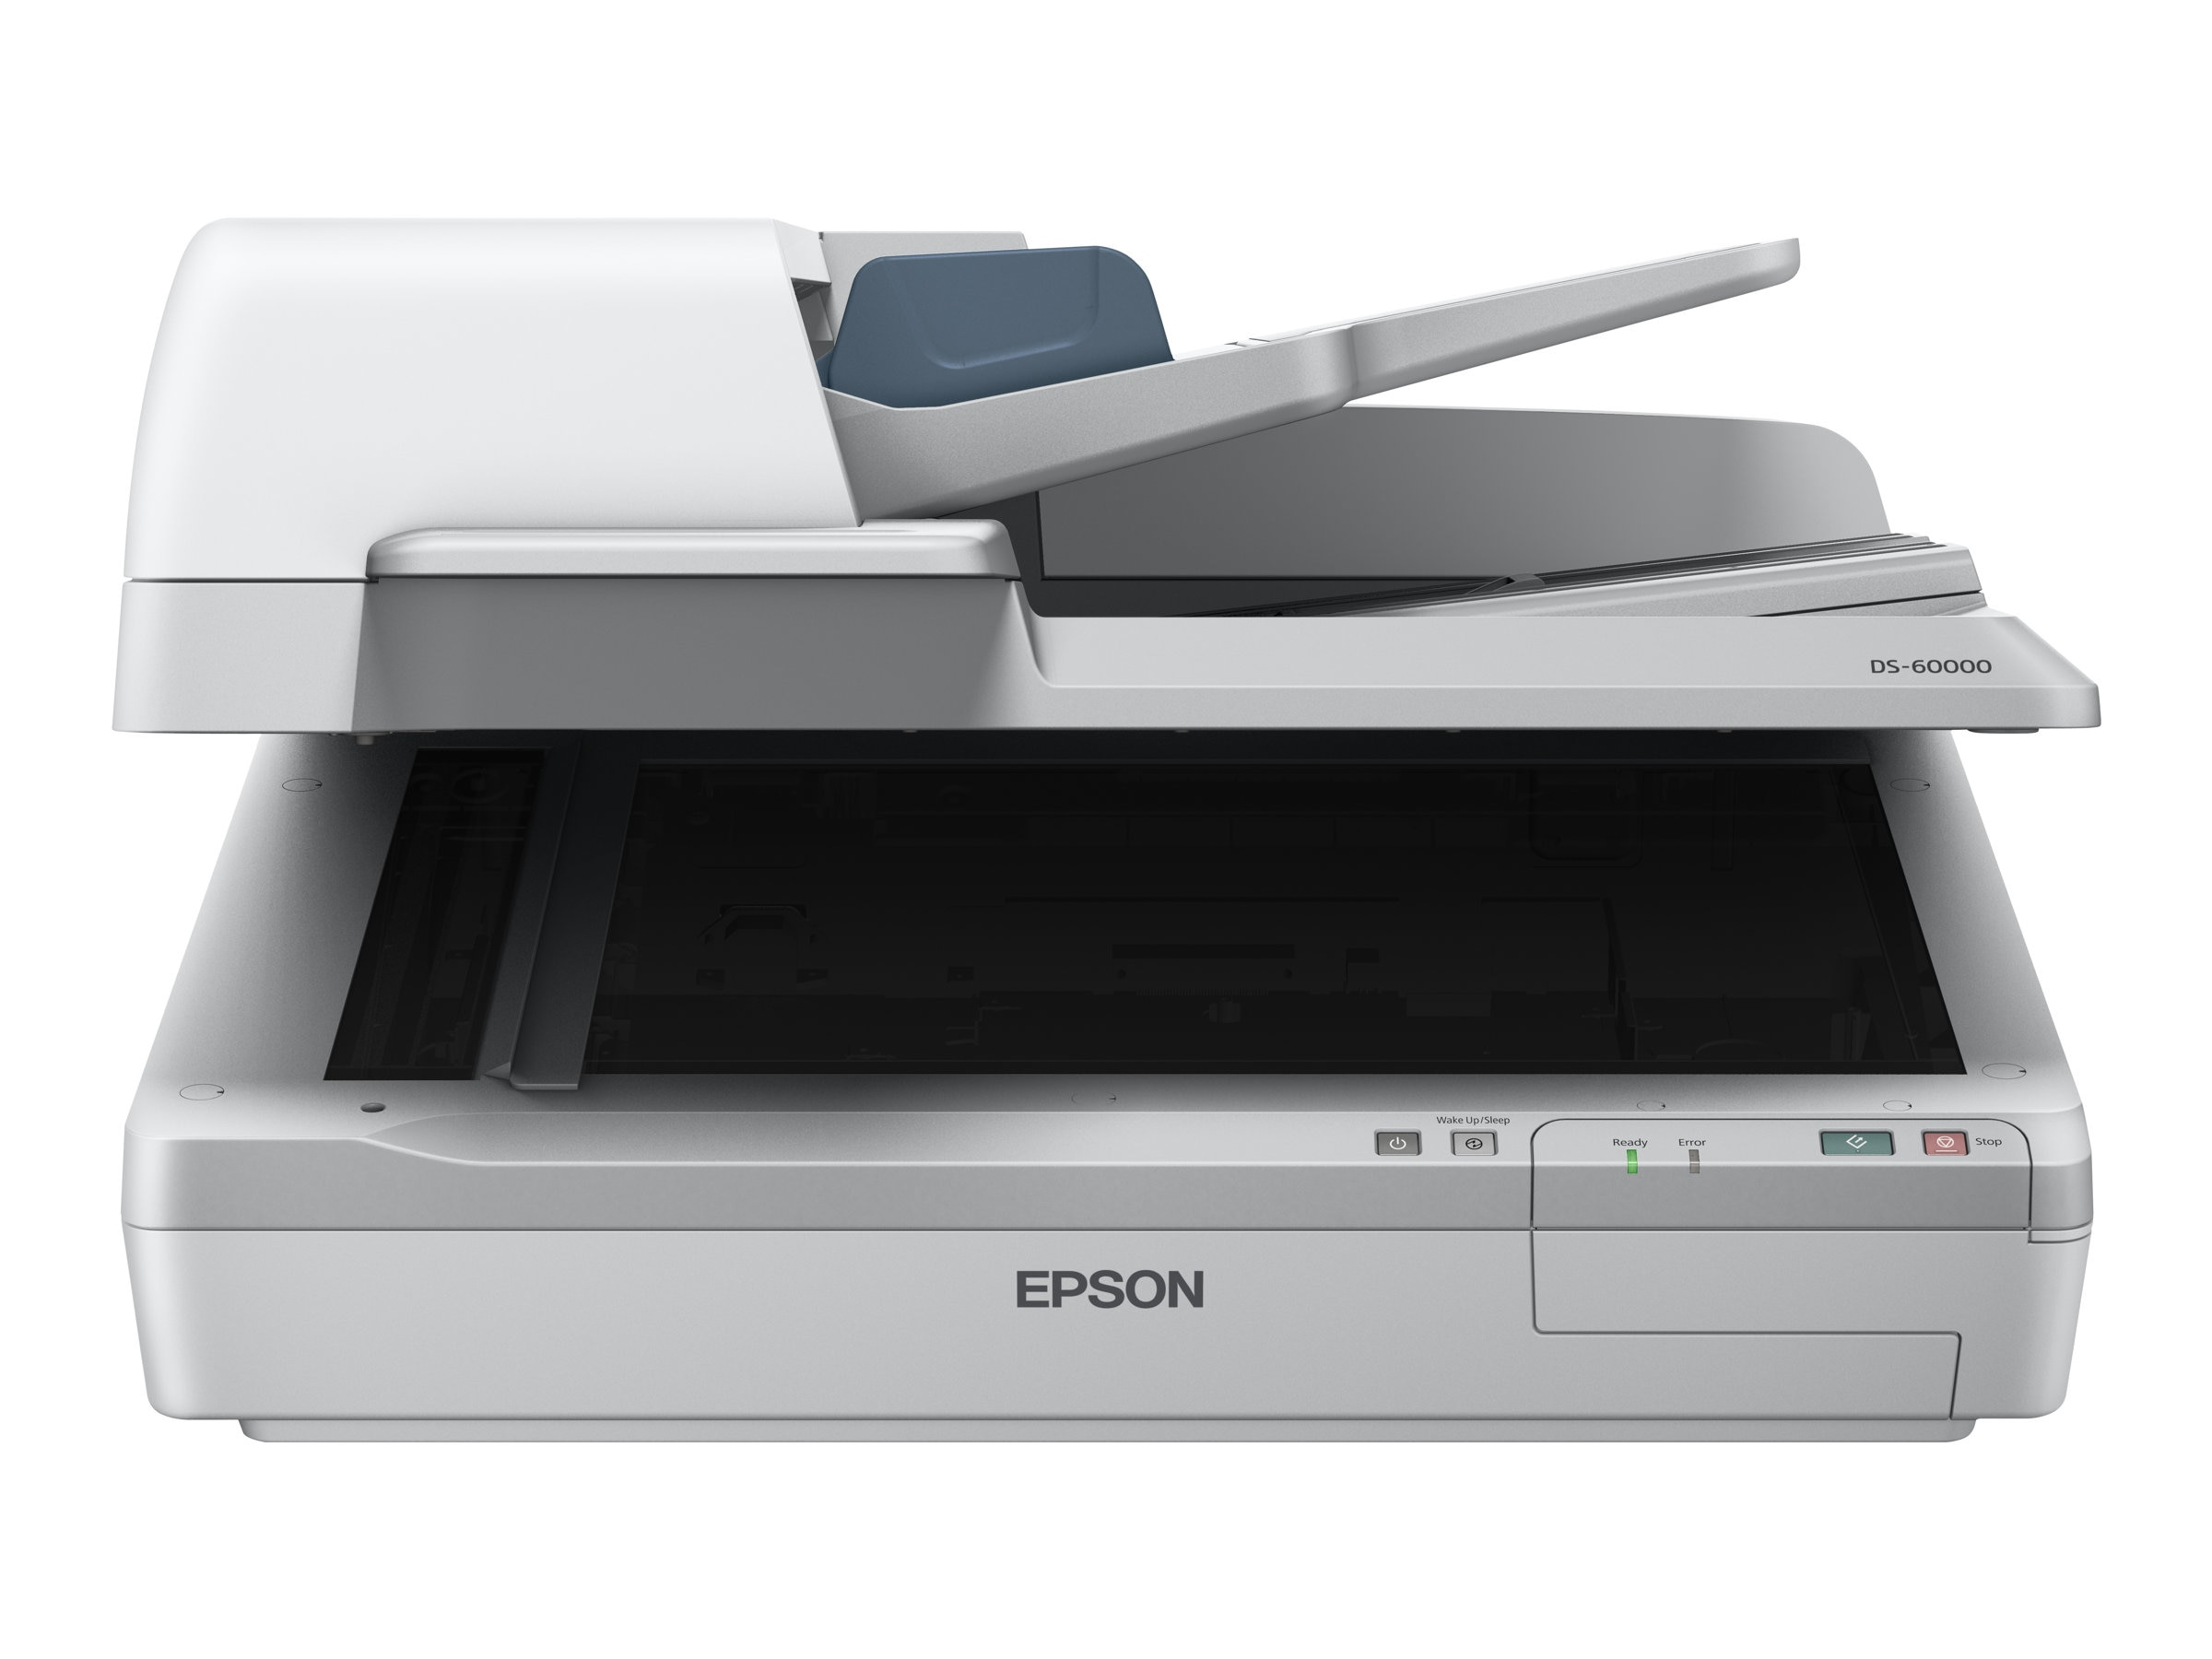 Epson Workforce DS-60000 Scanner - $2899 less instant rebate of $100.00